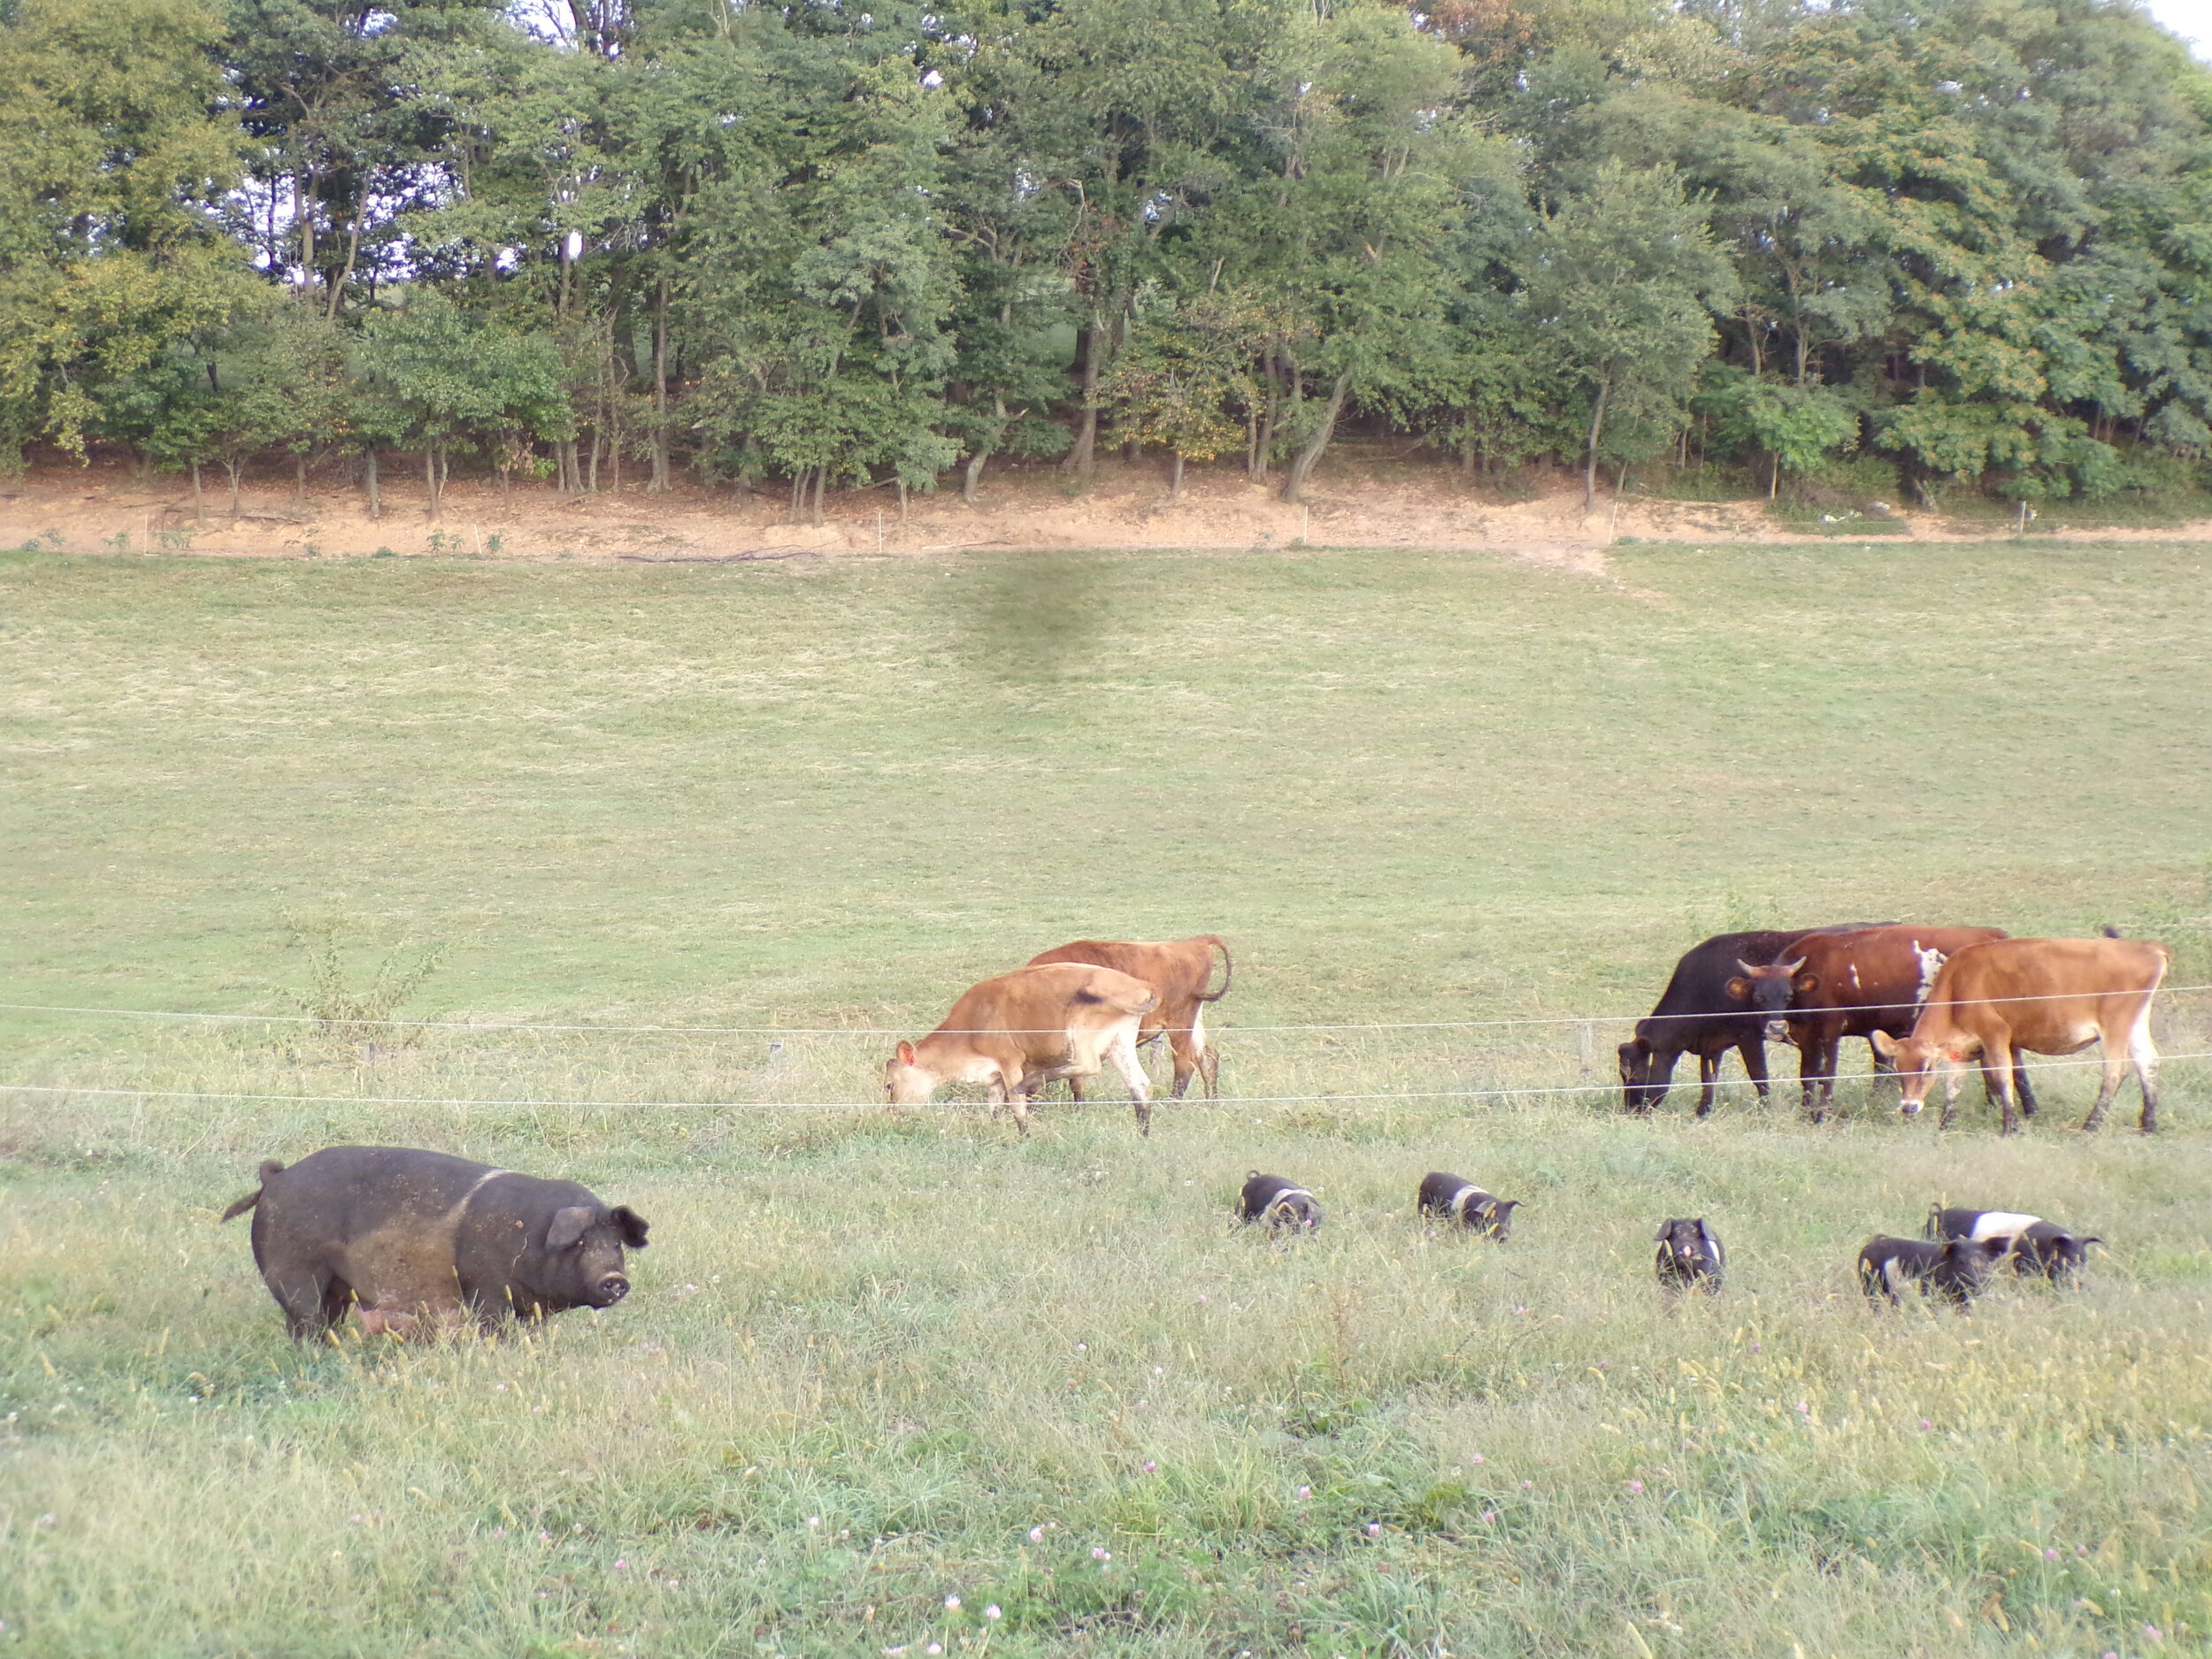 Here is the Perfect Mother Pig that is raising here 5 little Piglets. She is doing a wonderful job, and they are absolutely healthy, and so cute.  In the background are the Baby Cows (Calves) that the pigs share the field with.